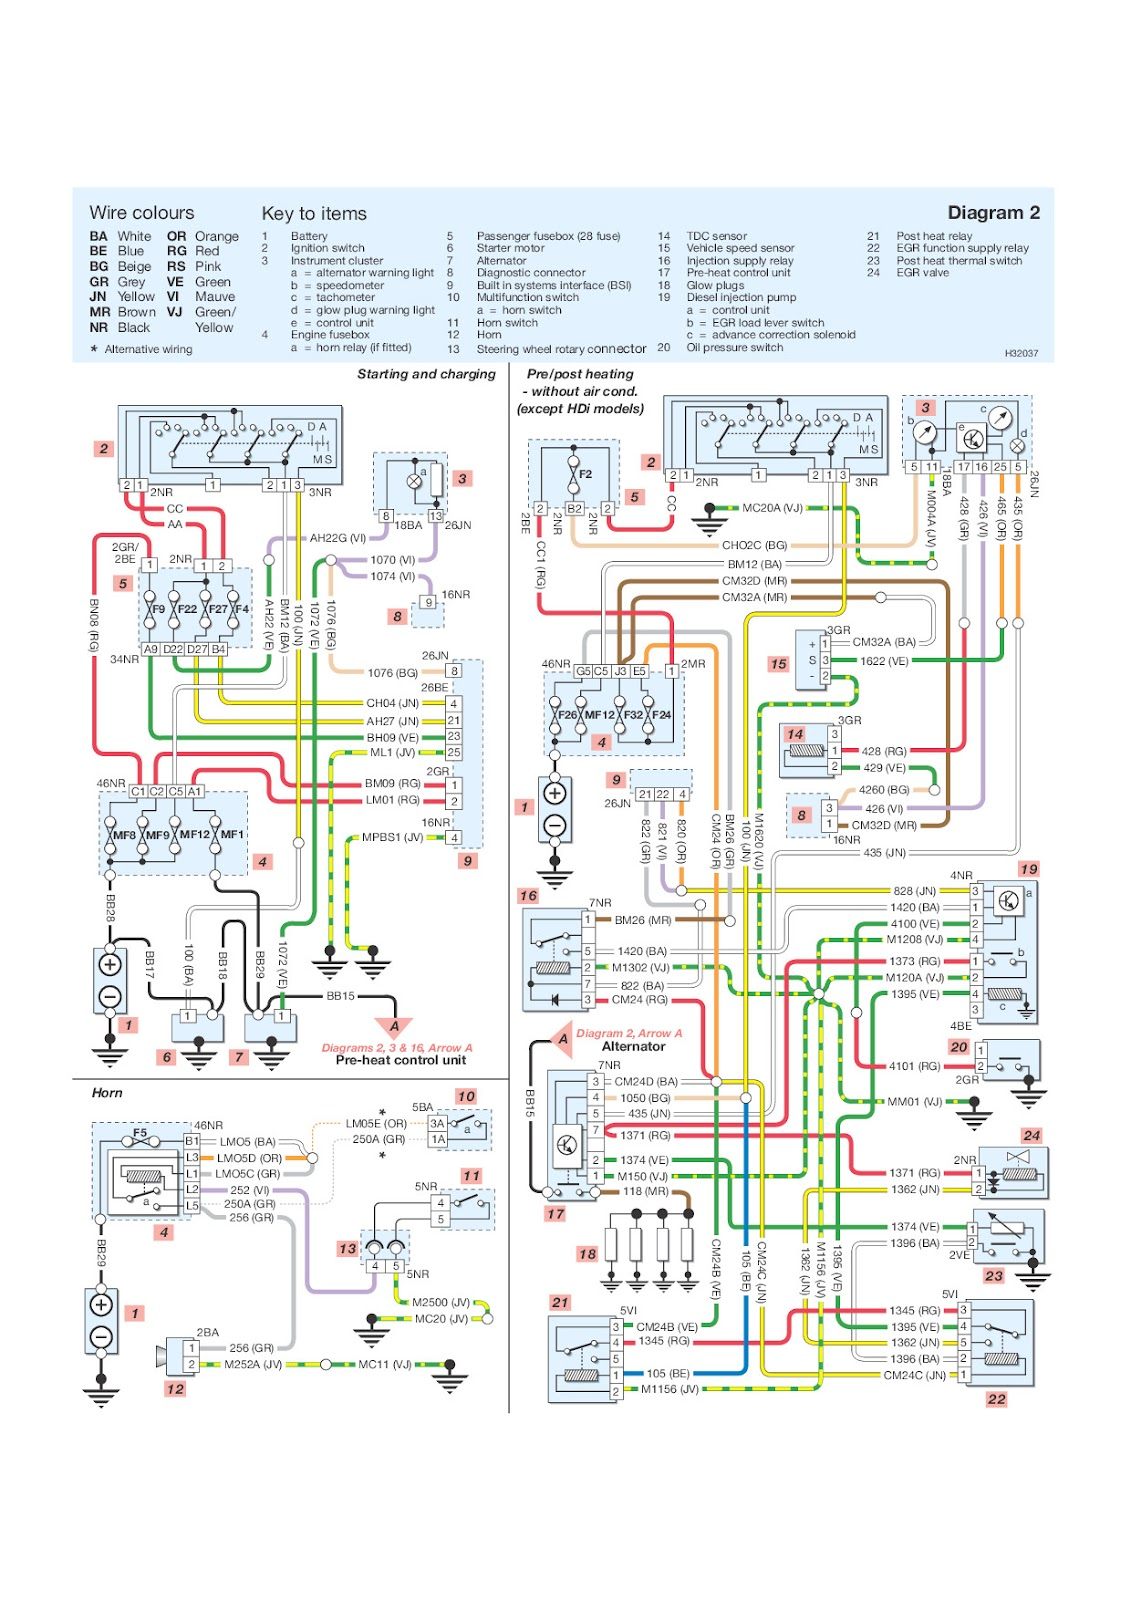 small resolution of wiring diagrams source peugeot 206 pre post heating engine cooling peugeot engine cooling diagram